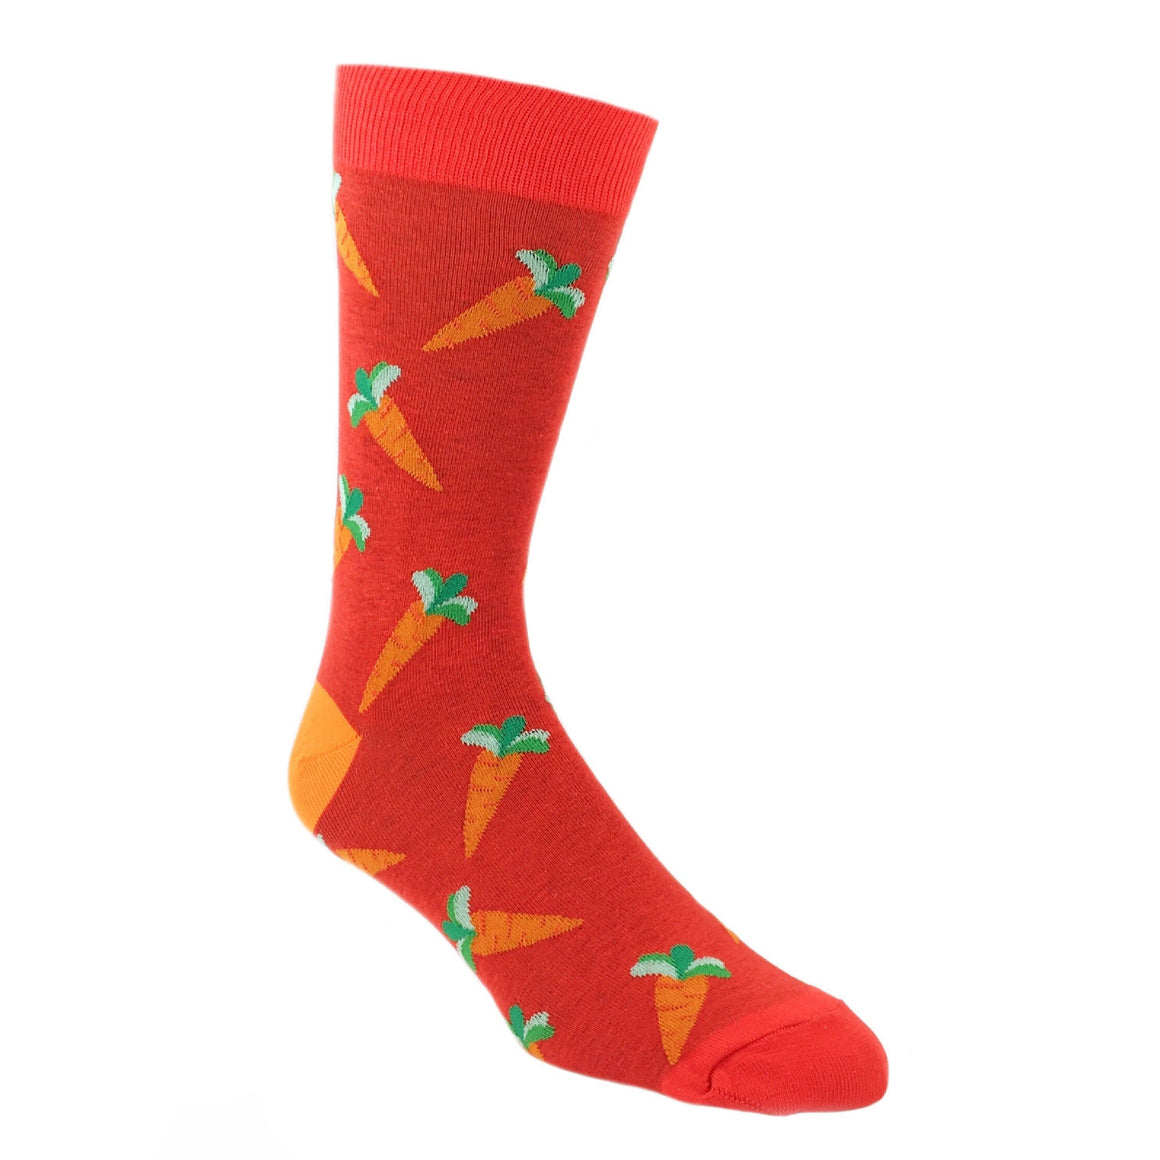 Healthy Carrots Socks by Good Luck Sock - The Sock Spot